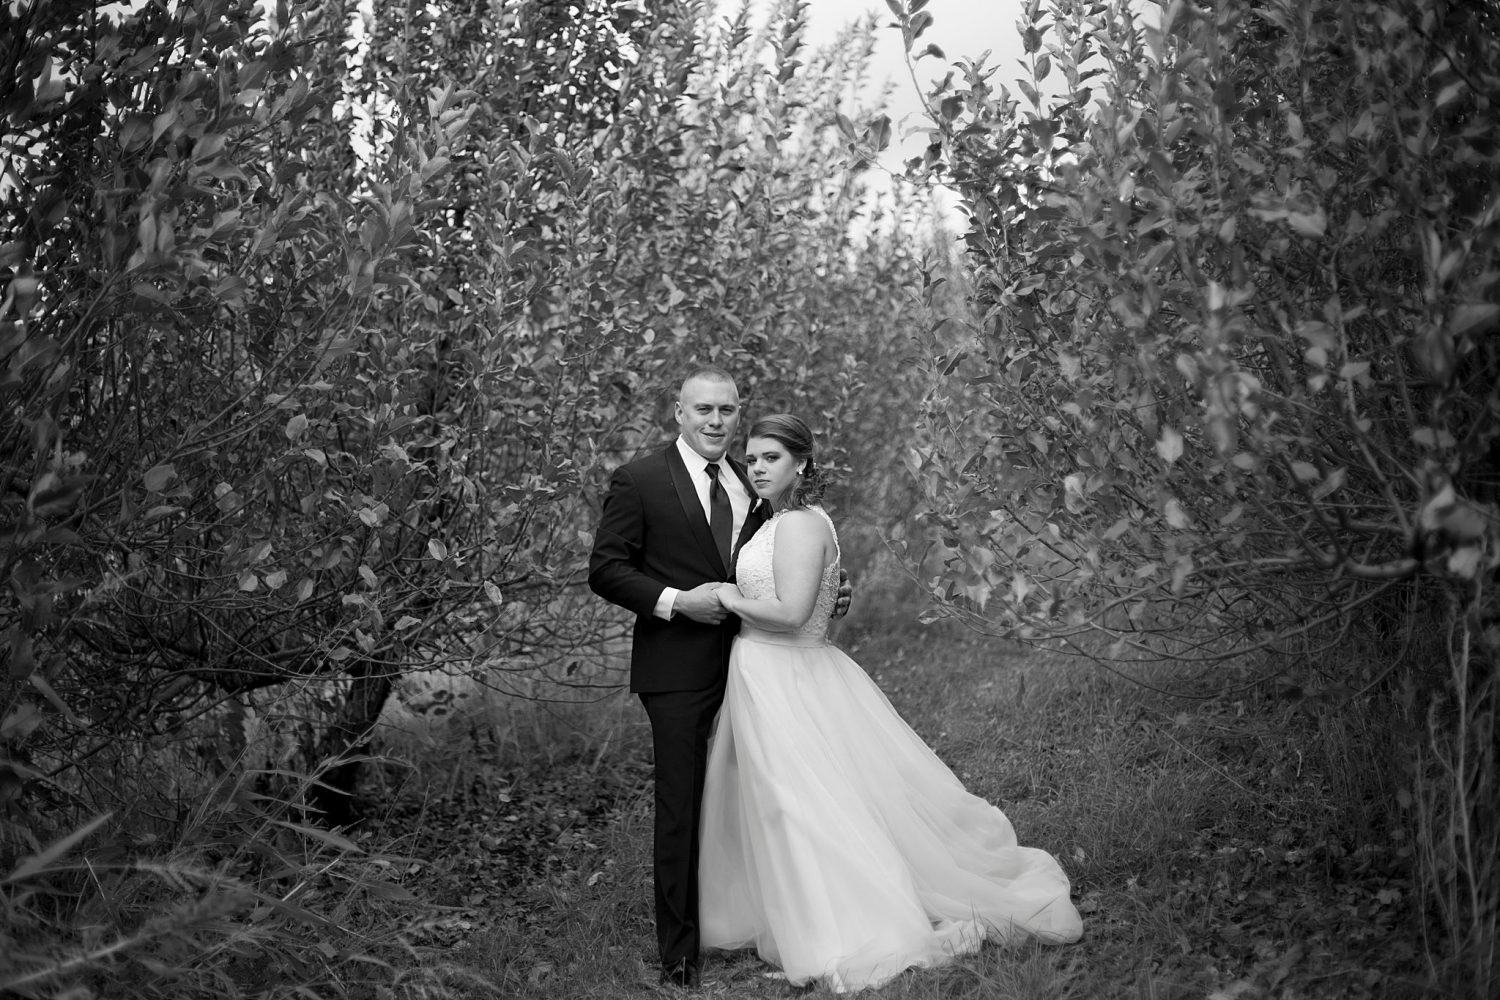 black and white image of the couple standing among apple trees in the orchard, holding hands.